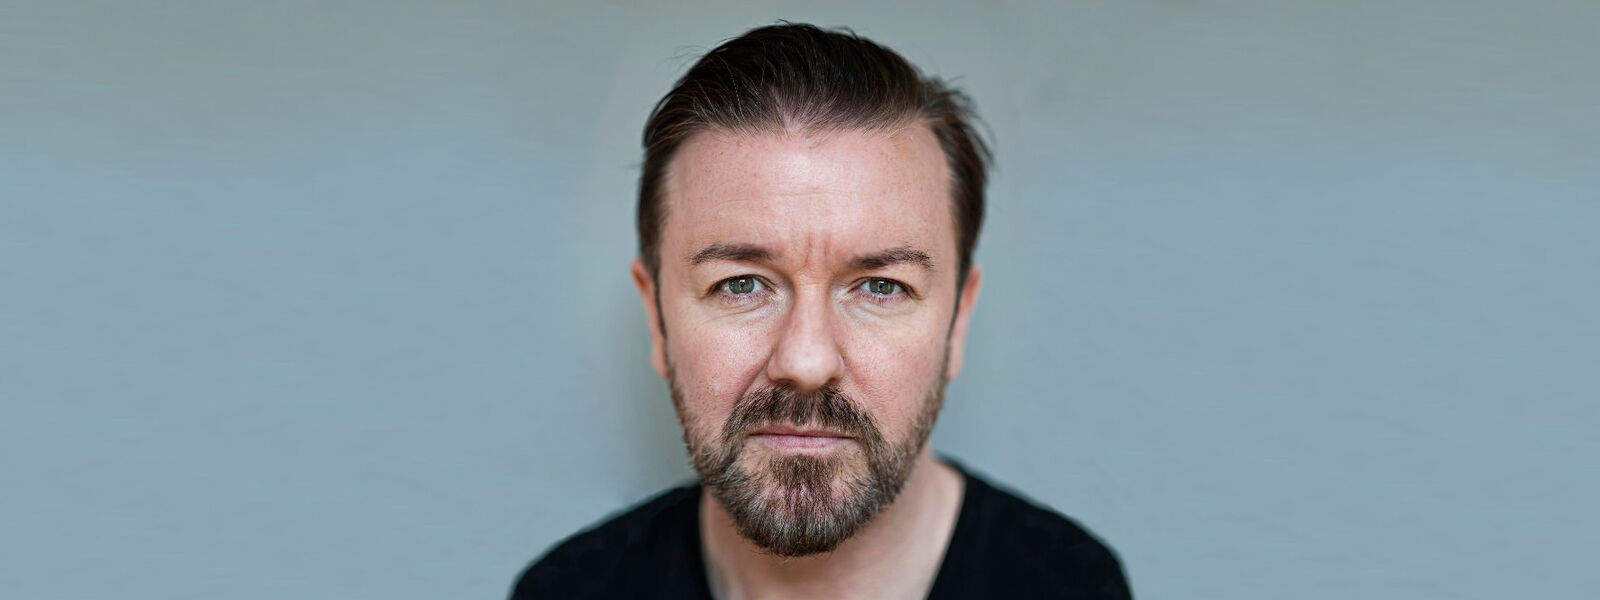 PARKING PASSES ONLY Ricky Gervais